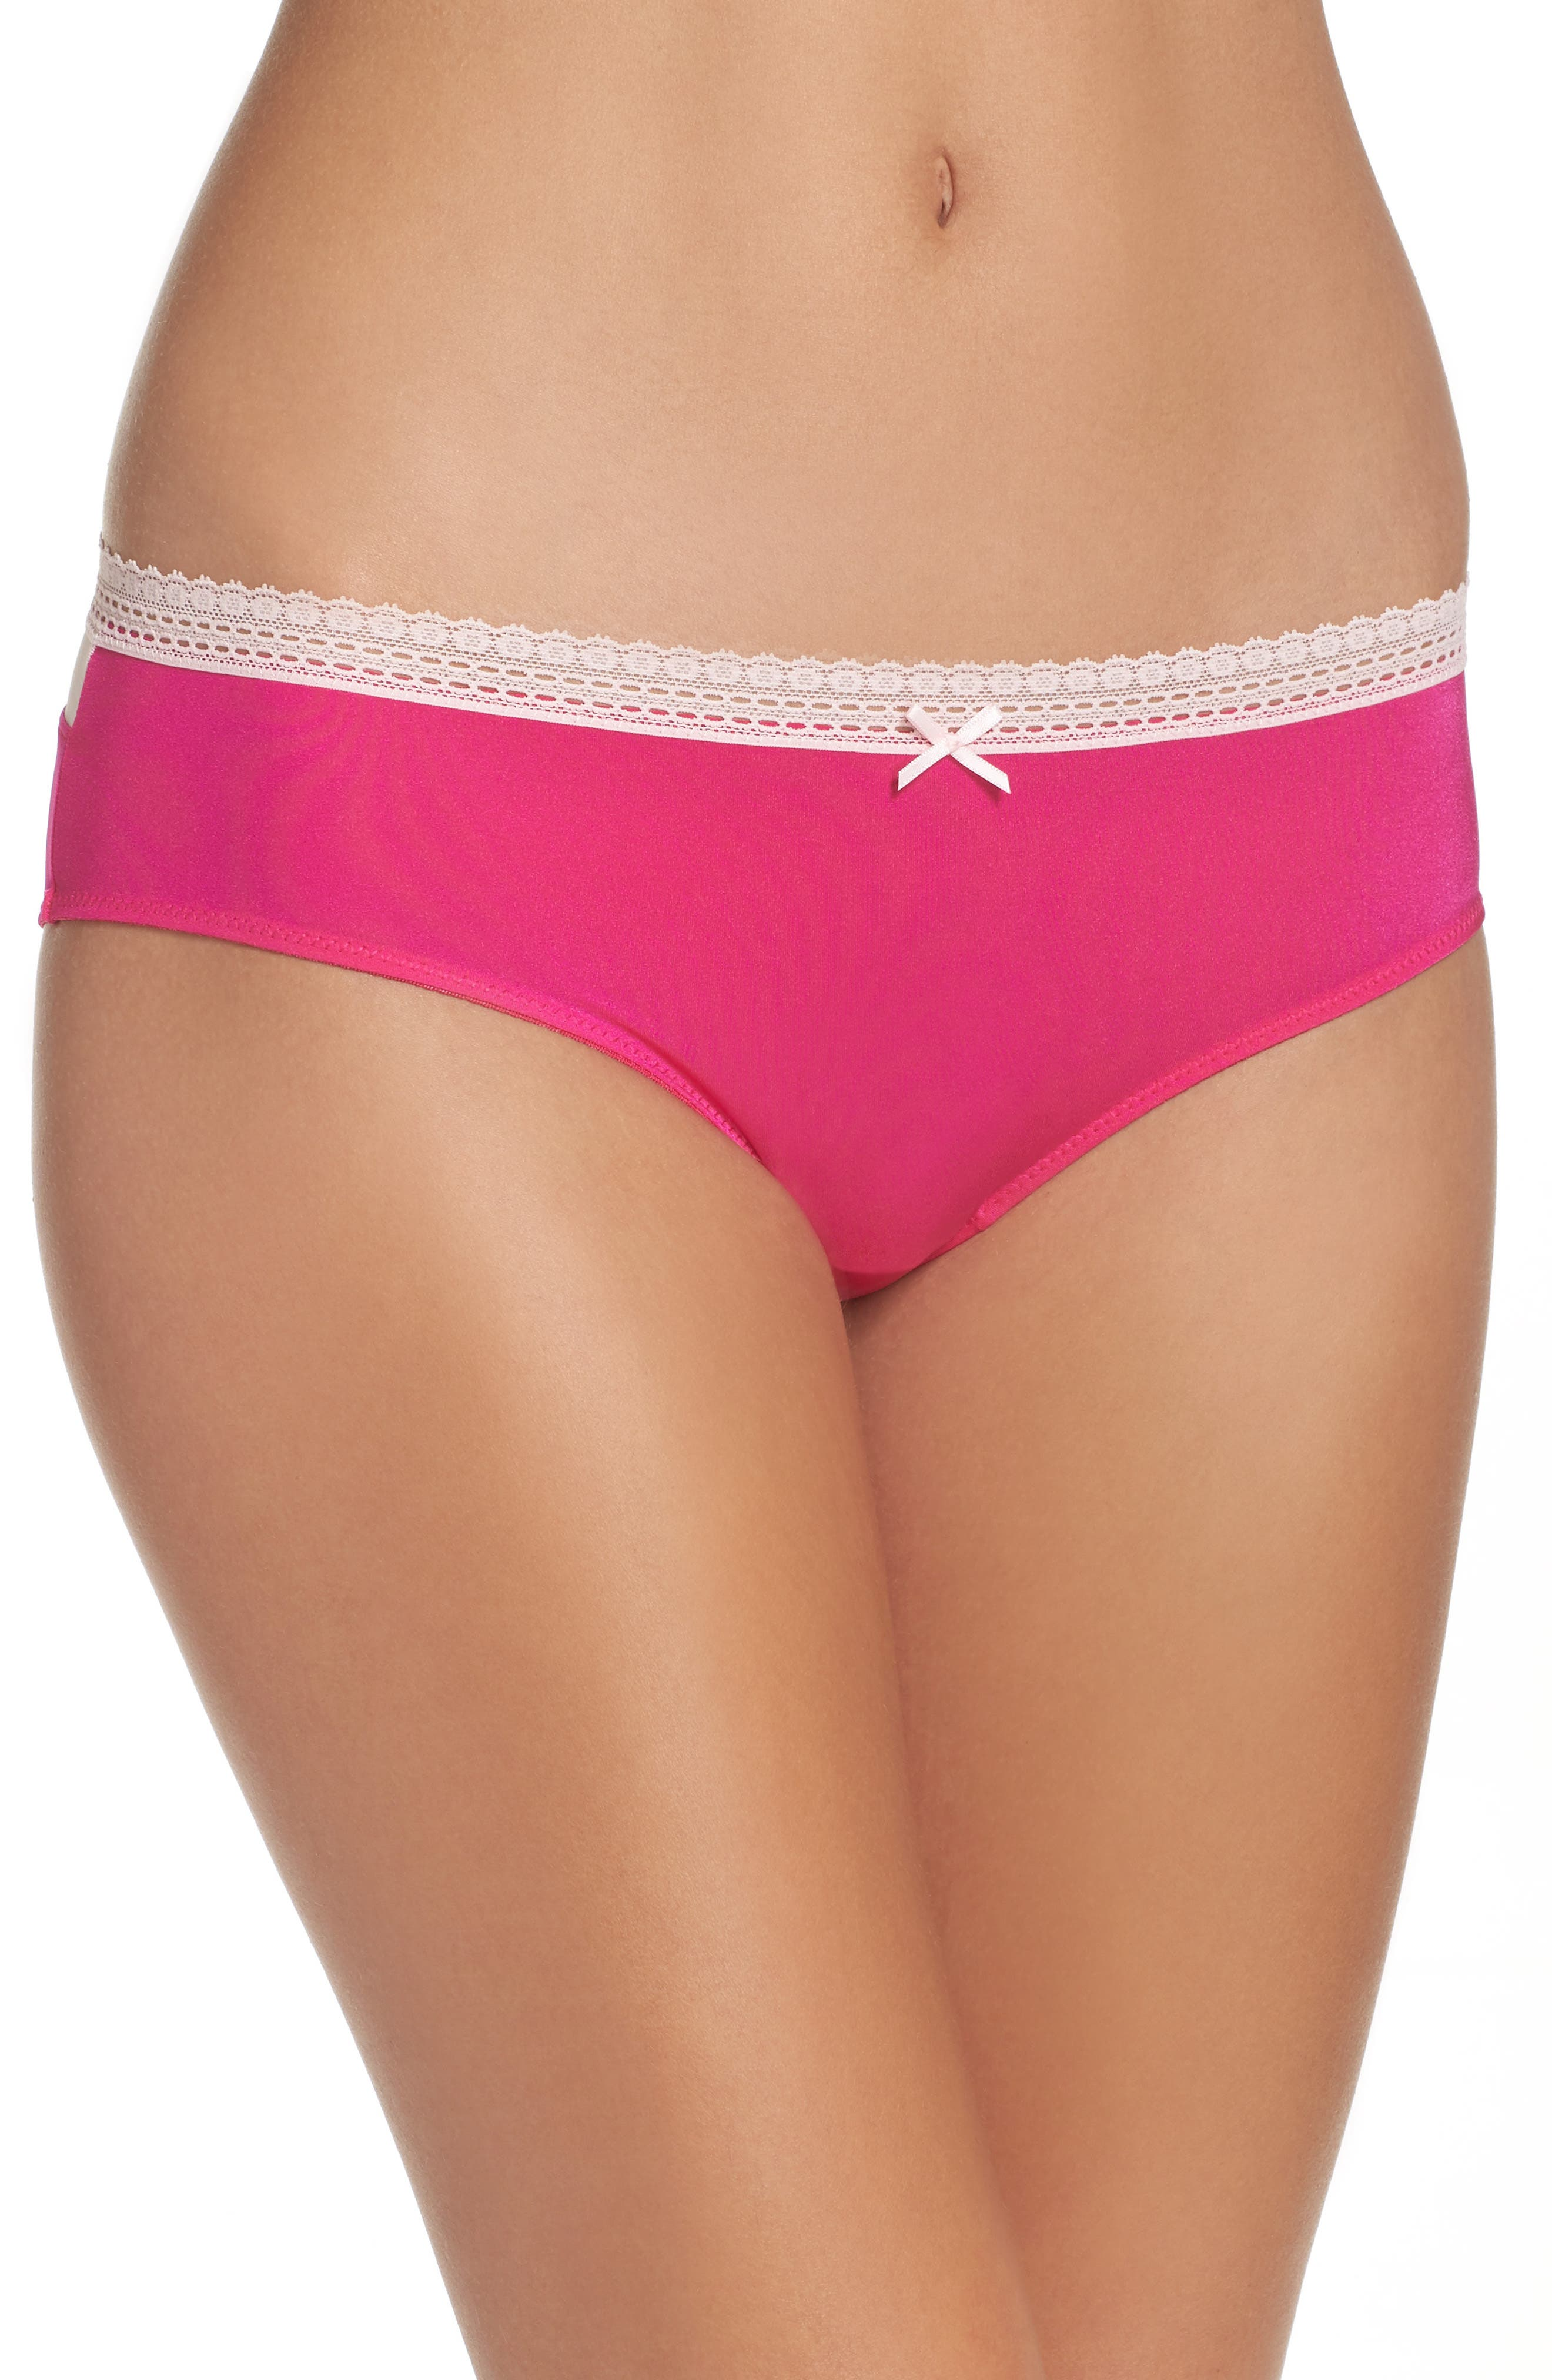 'Forever Perfect - Cutie' Hipster Briefs,                             Main thumbnail 1, color,                             650